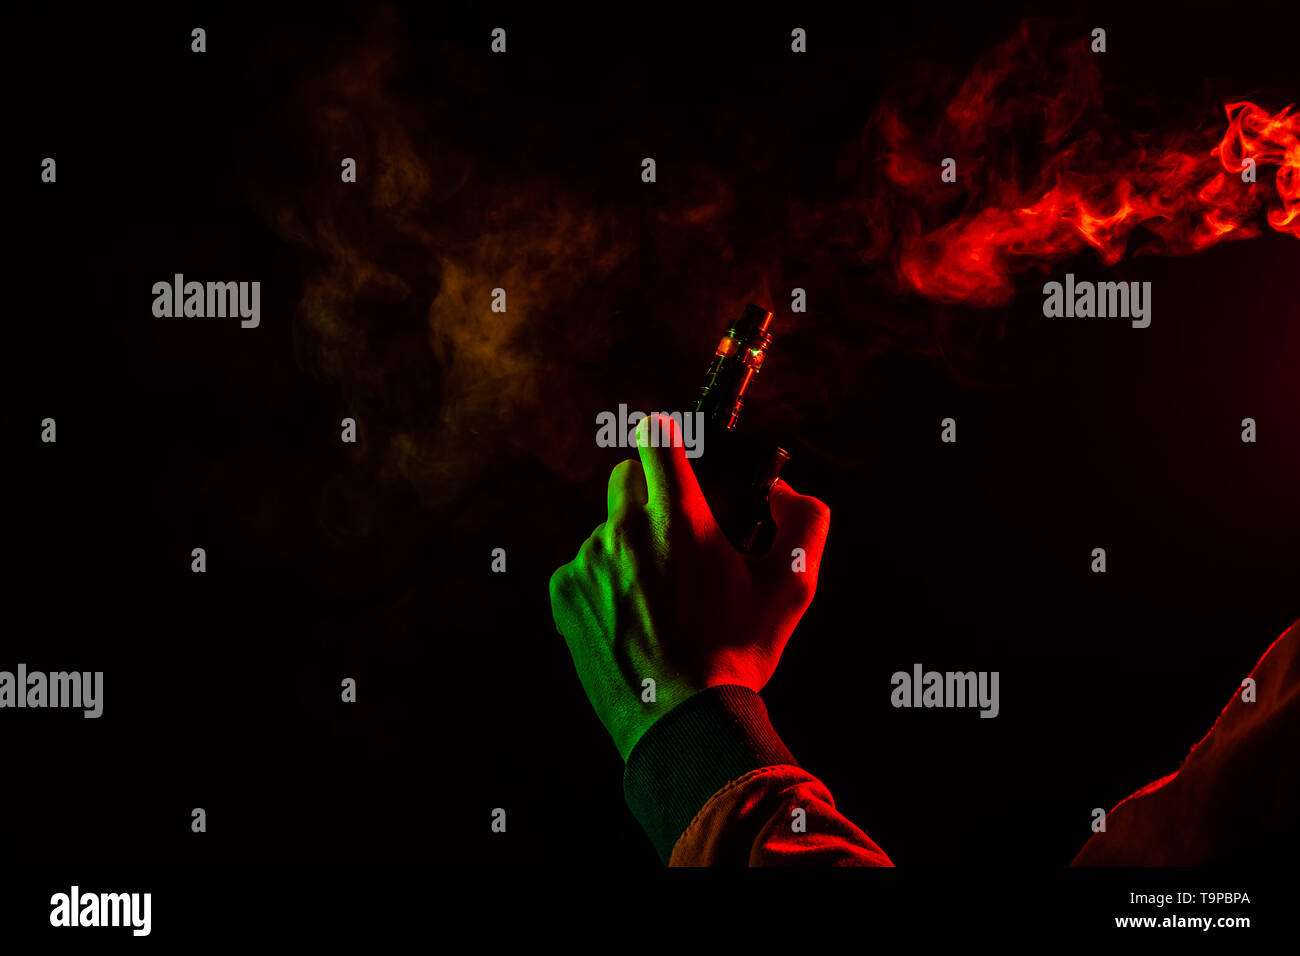 A man body part arm and hand view with green light in a orange hoodie smokes a vape and exhales a red smoke on a black isolated background. Harm to hu - Stock Image